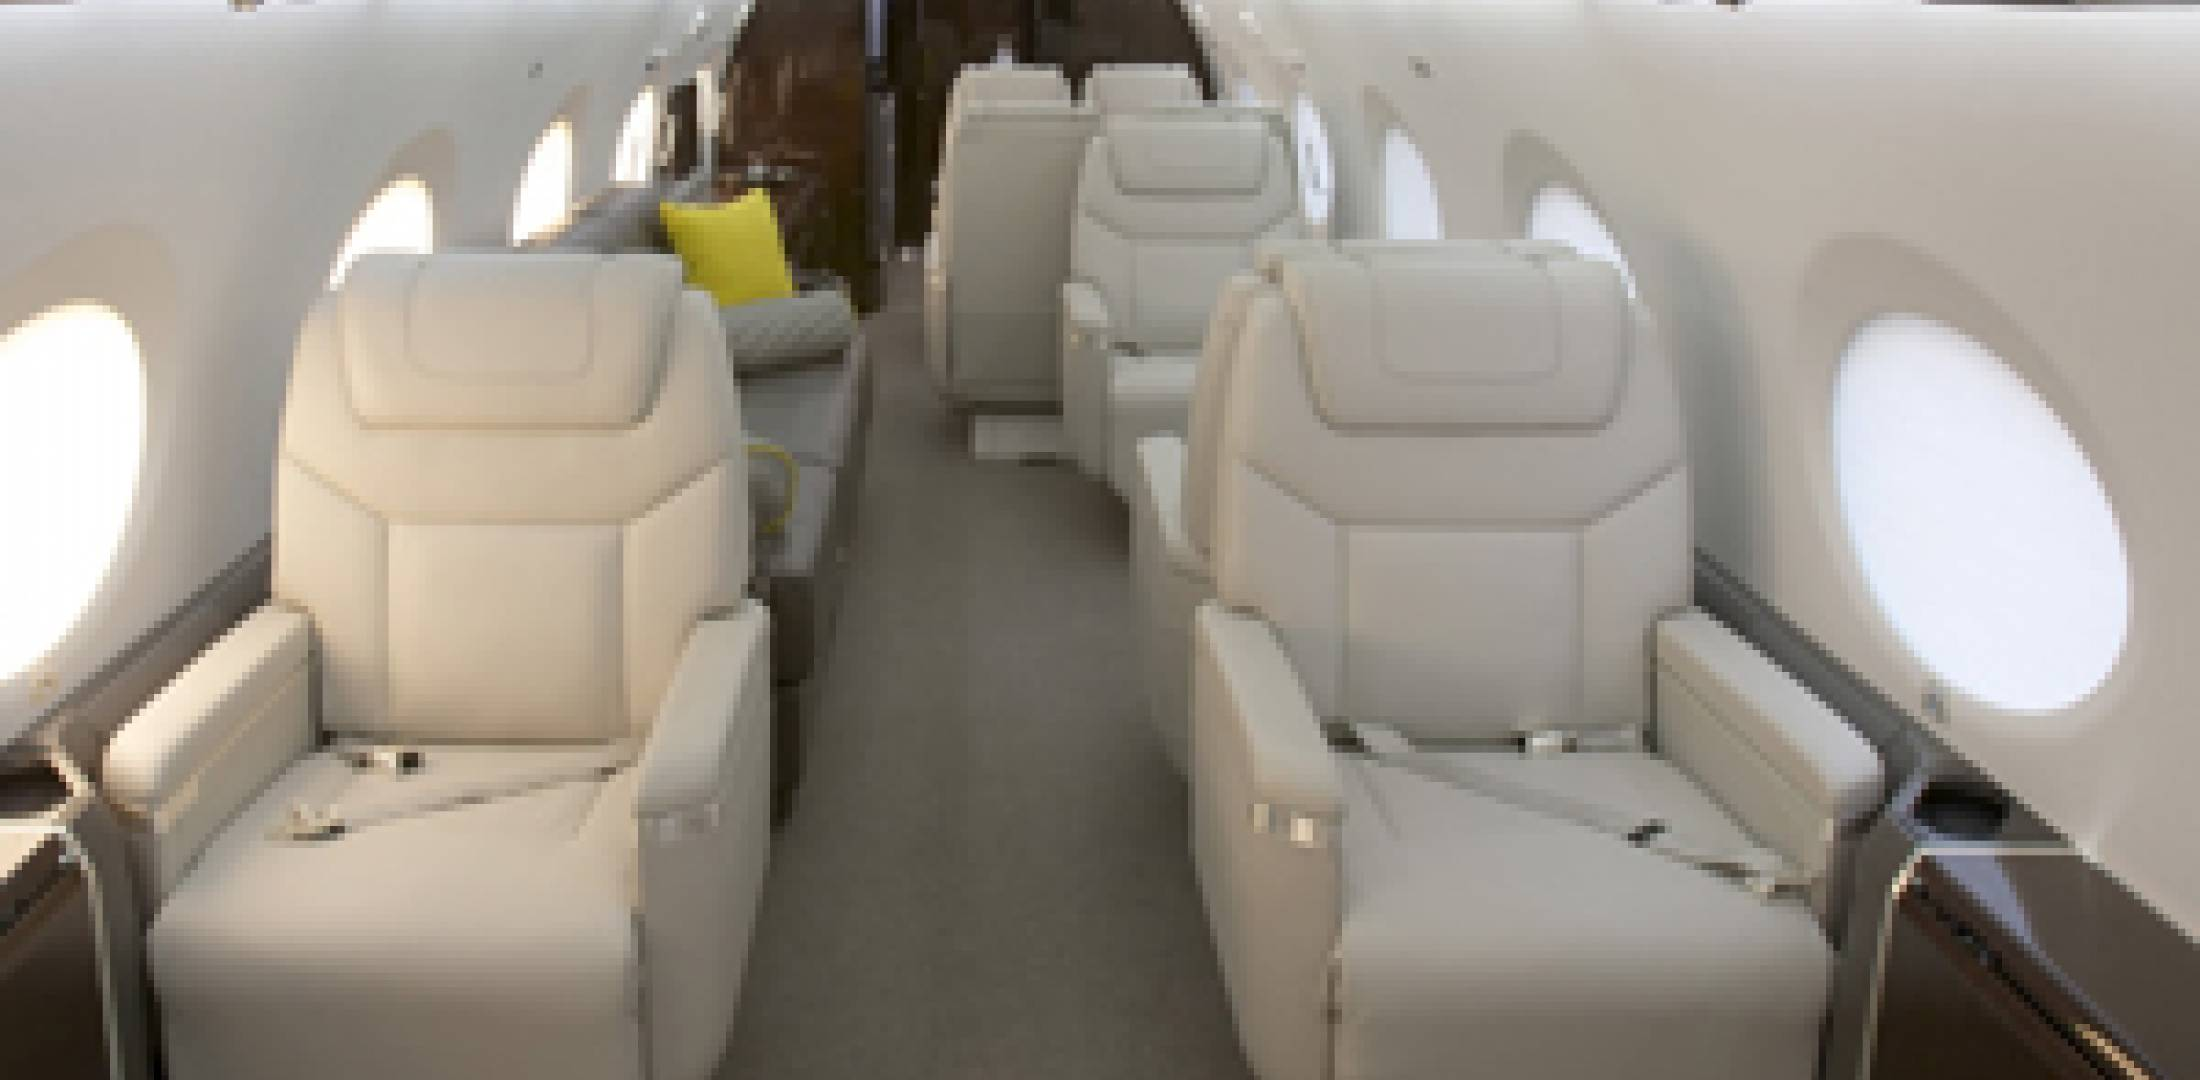 Gulfstream Aerospace Unveiled Its New U201cEliteu201d Interiors For The G550 And  G450 At The NBAA Convention This Week In Las Vegas.